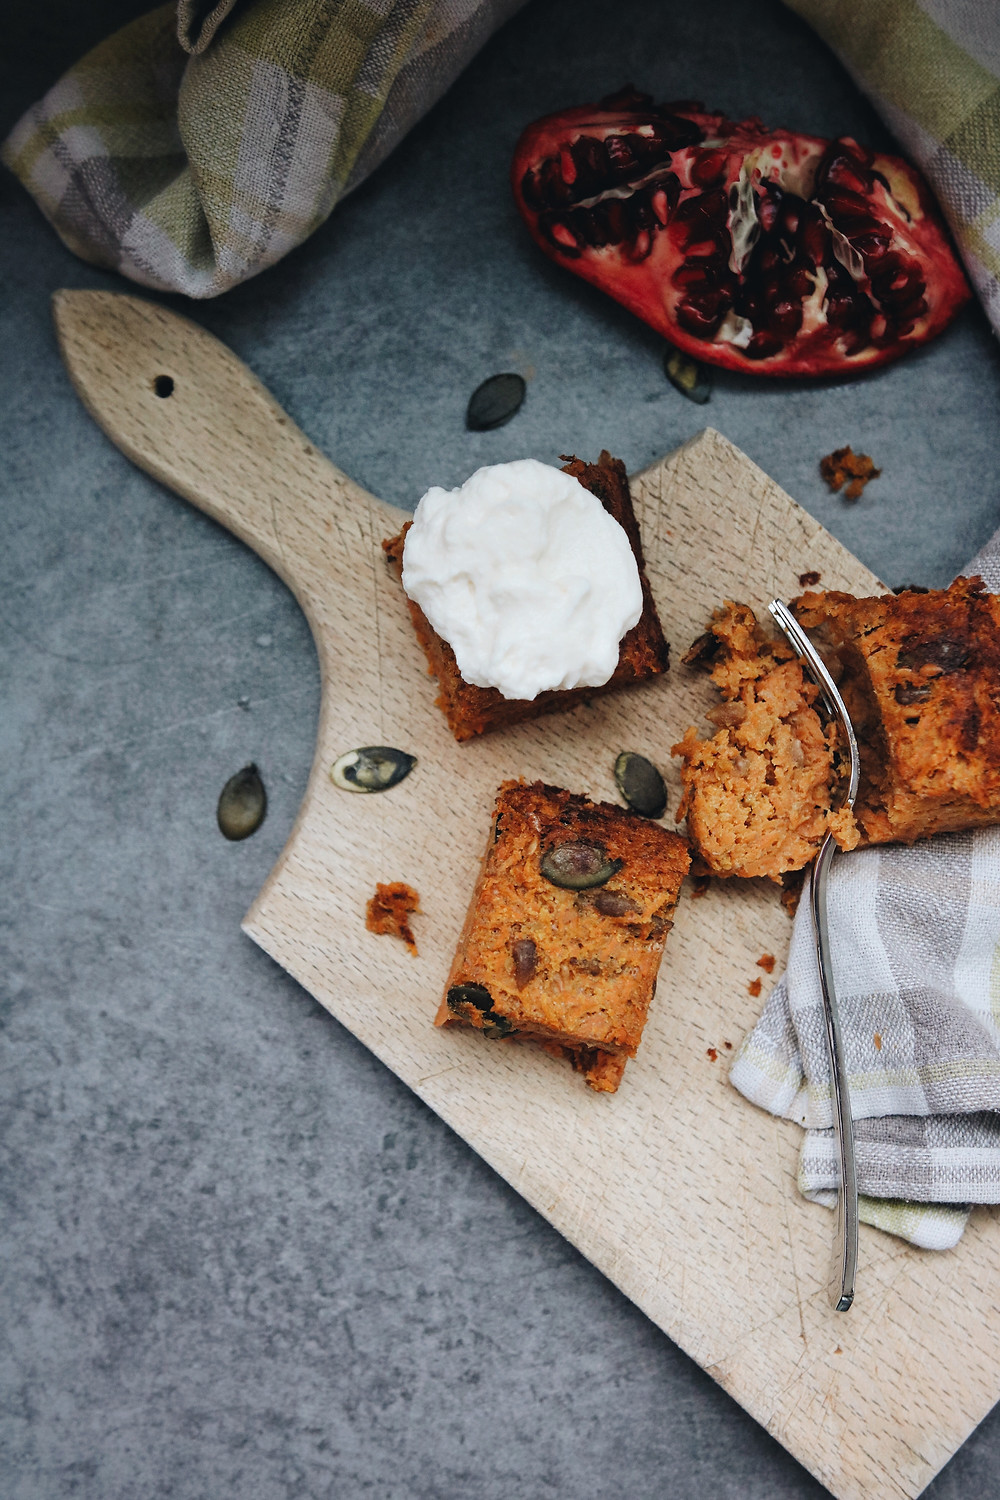 Carrot cake bars lay on a wooden cutting board, cream cheese frosting on top of one cake piece, pomegranate seeds in the background, pumpkin seeds scattered around the scene.